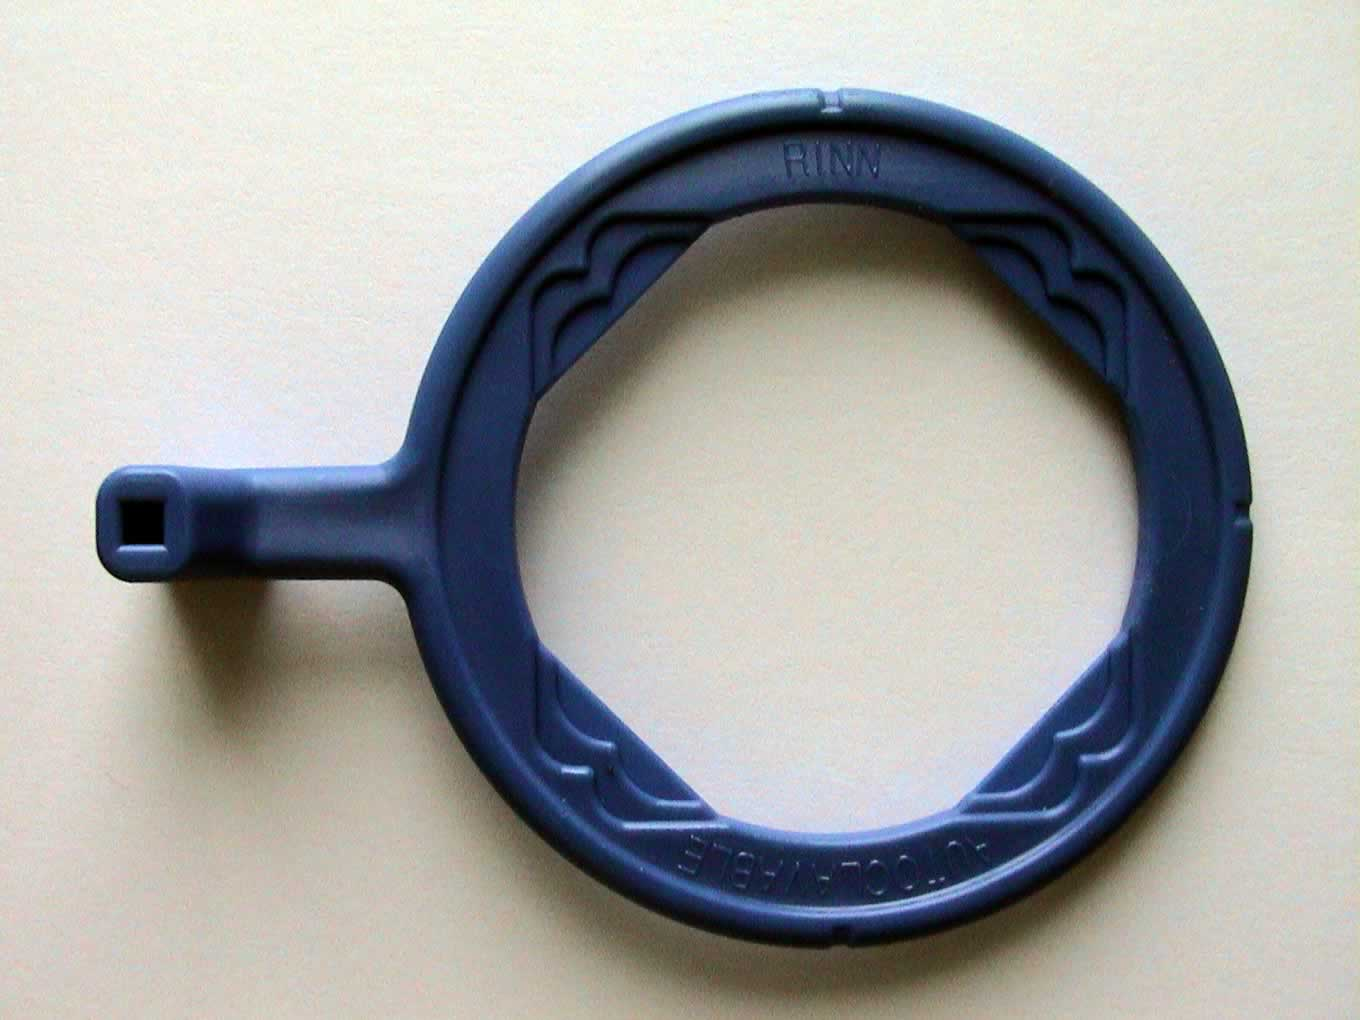 Center Aiming ring